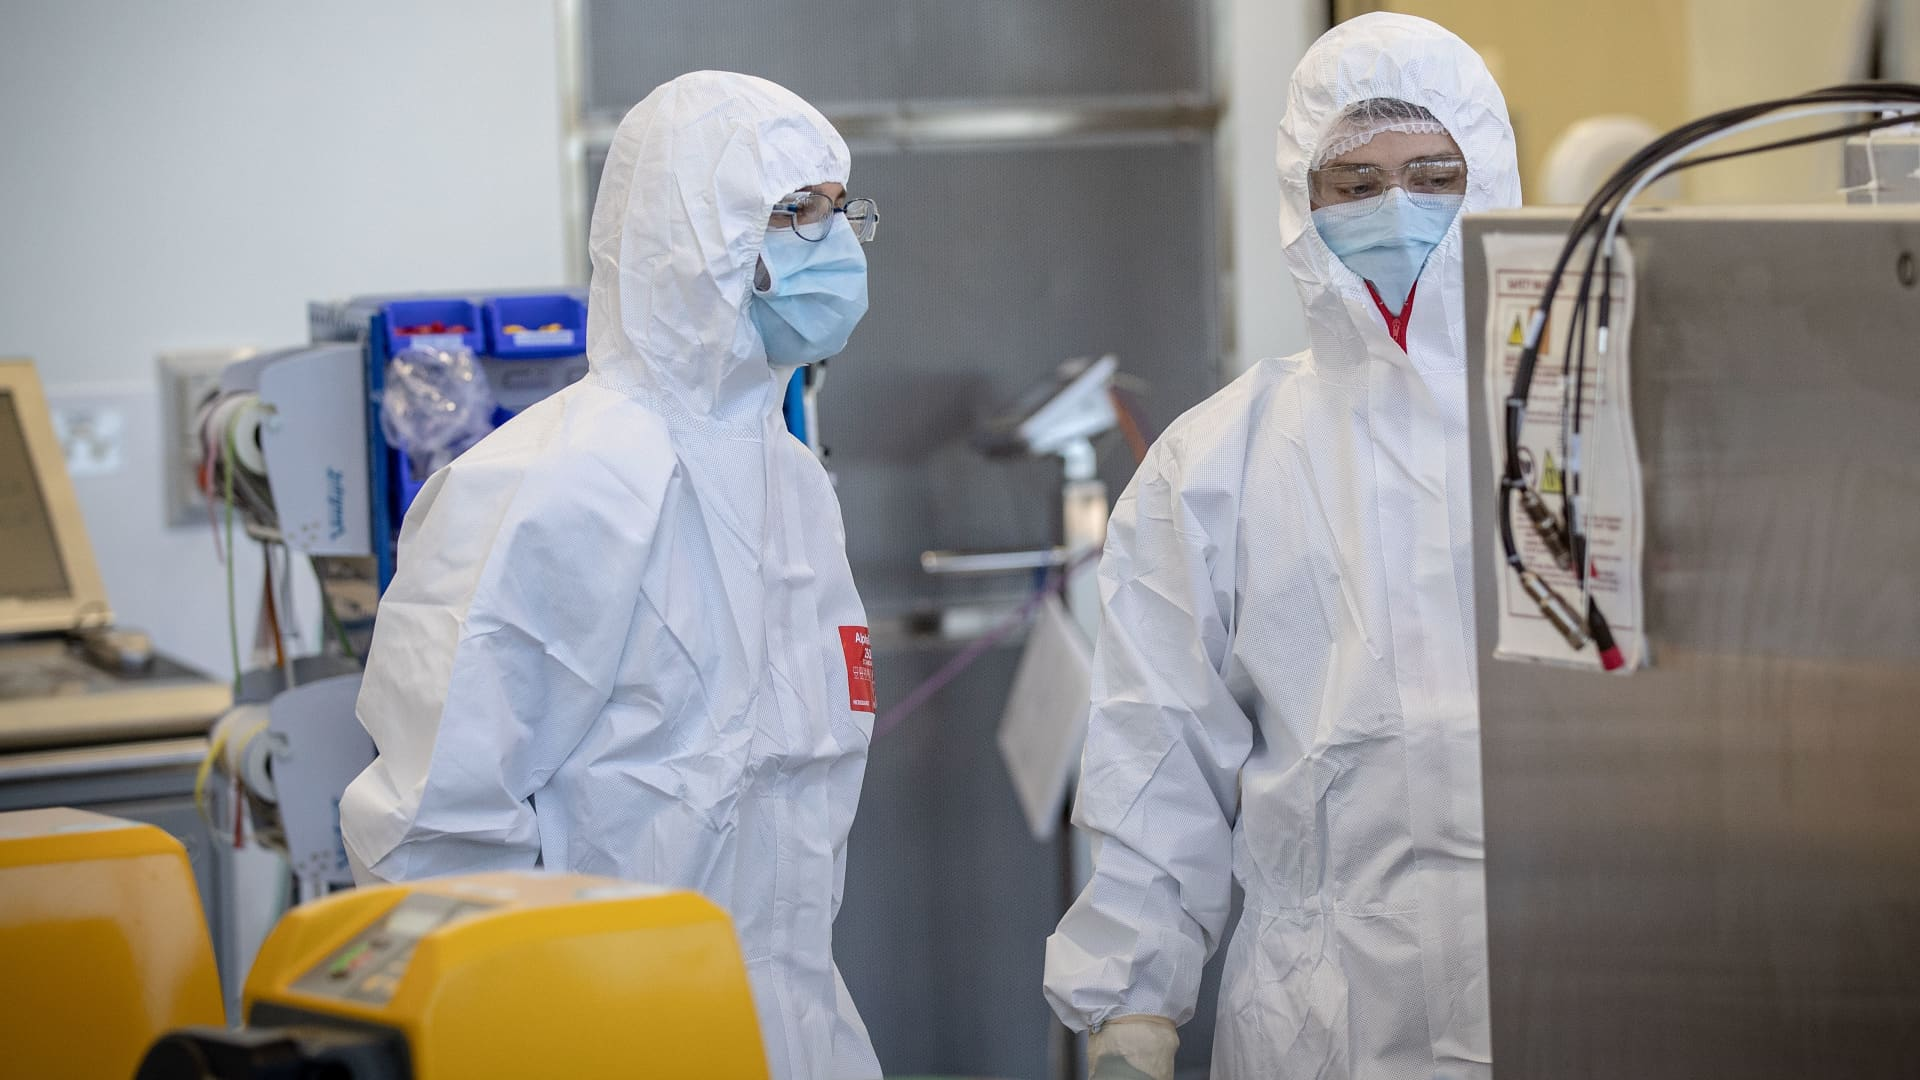 Staff at CSL are working in the lab on November 08, 2020 in Melbourne, Australia, where they will begin manufacturing AstraZeneca-Oxford University COVID-19 vaccine.